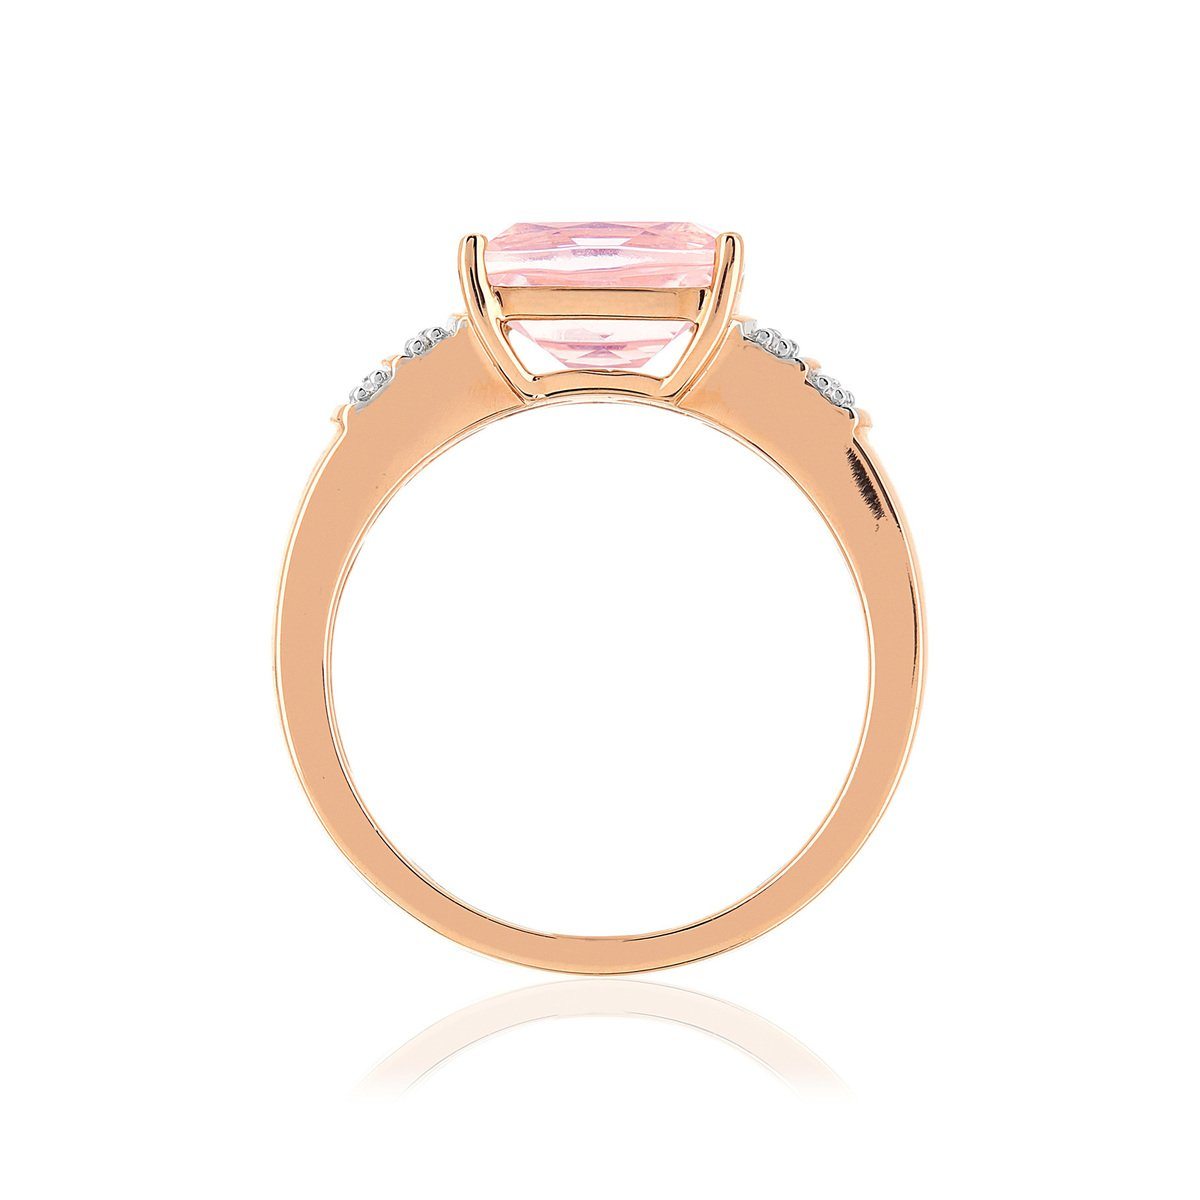 Bague or 375 rose morganite et diamant - vue V2